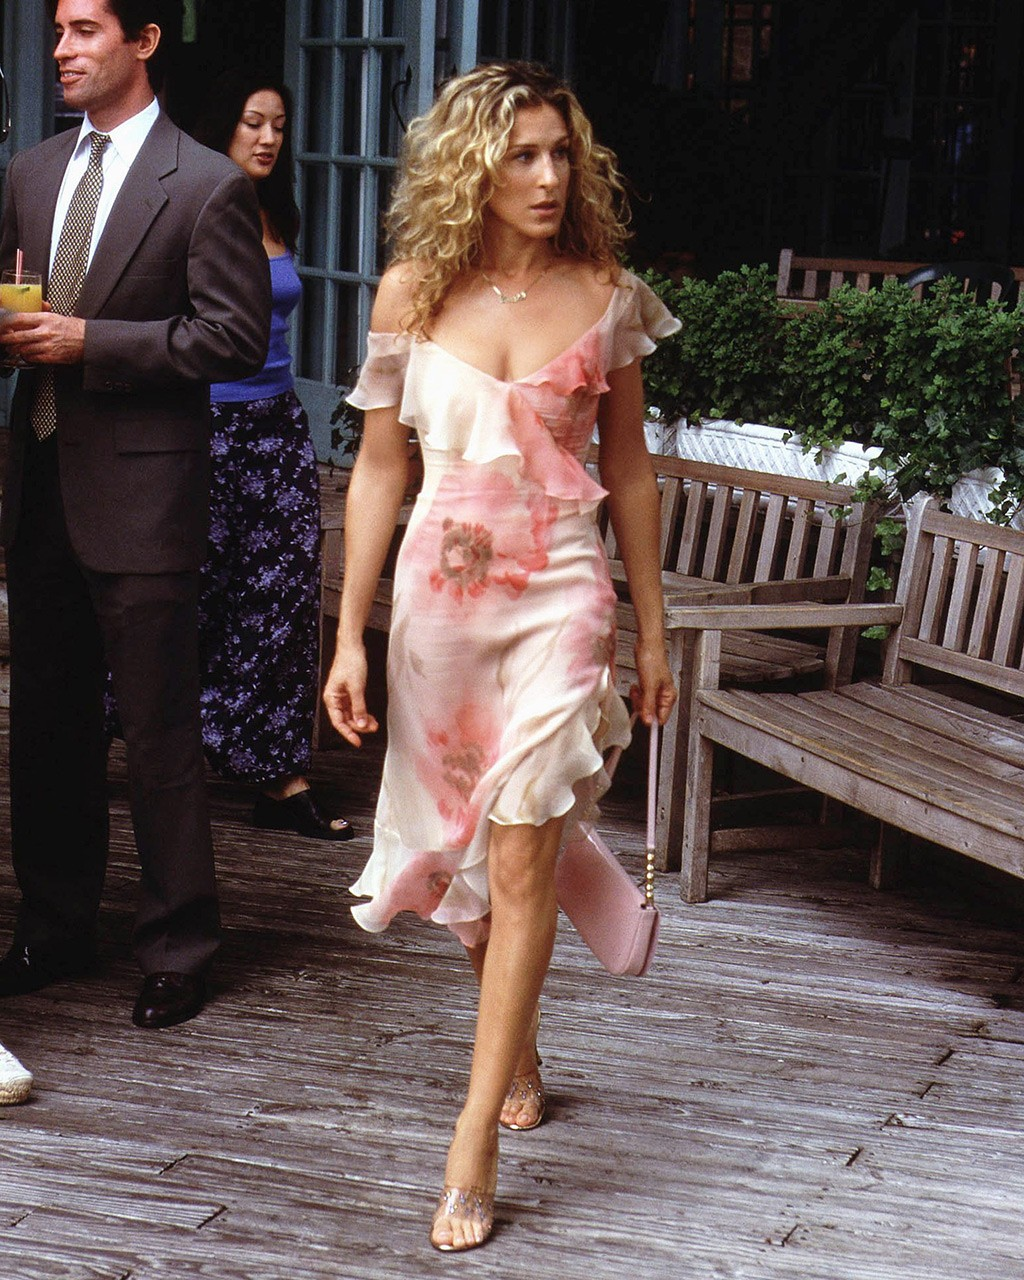 shoes-carrie-bradshaw-6.jpg